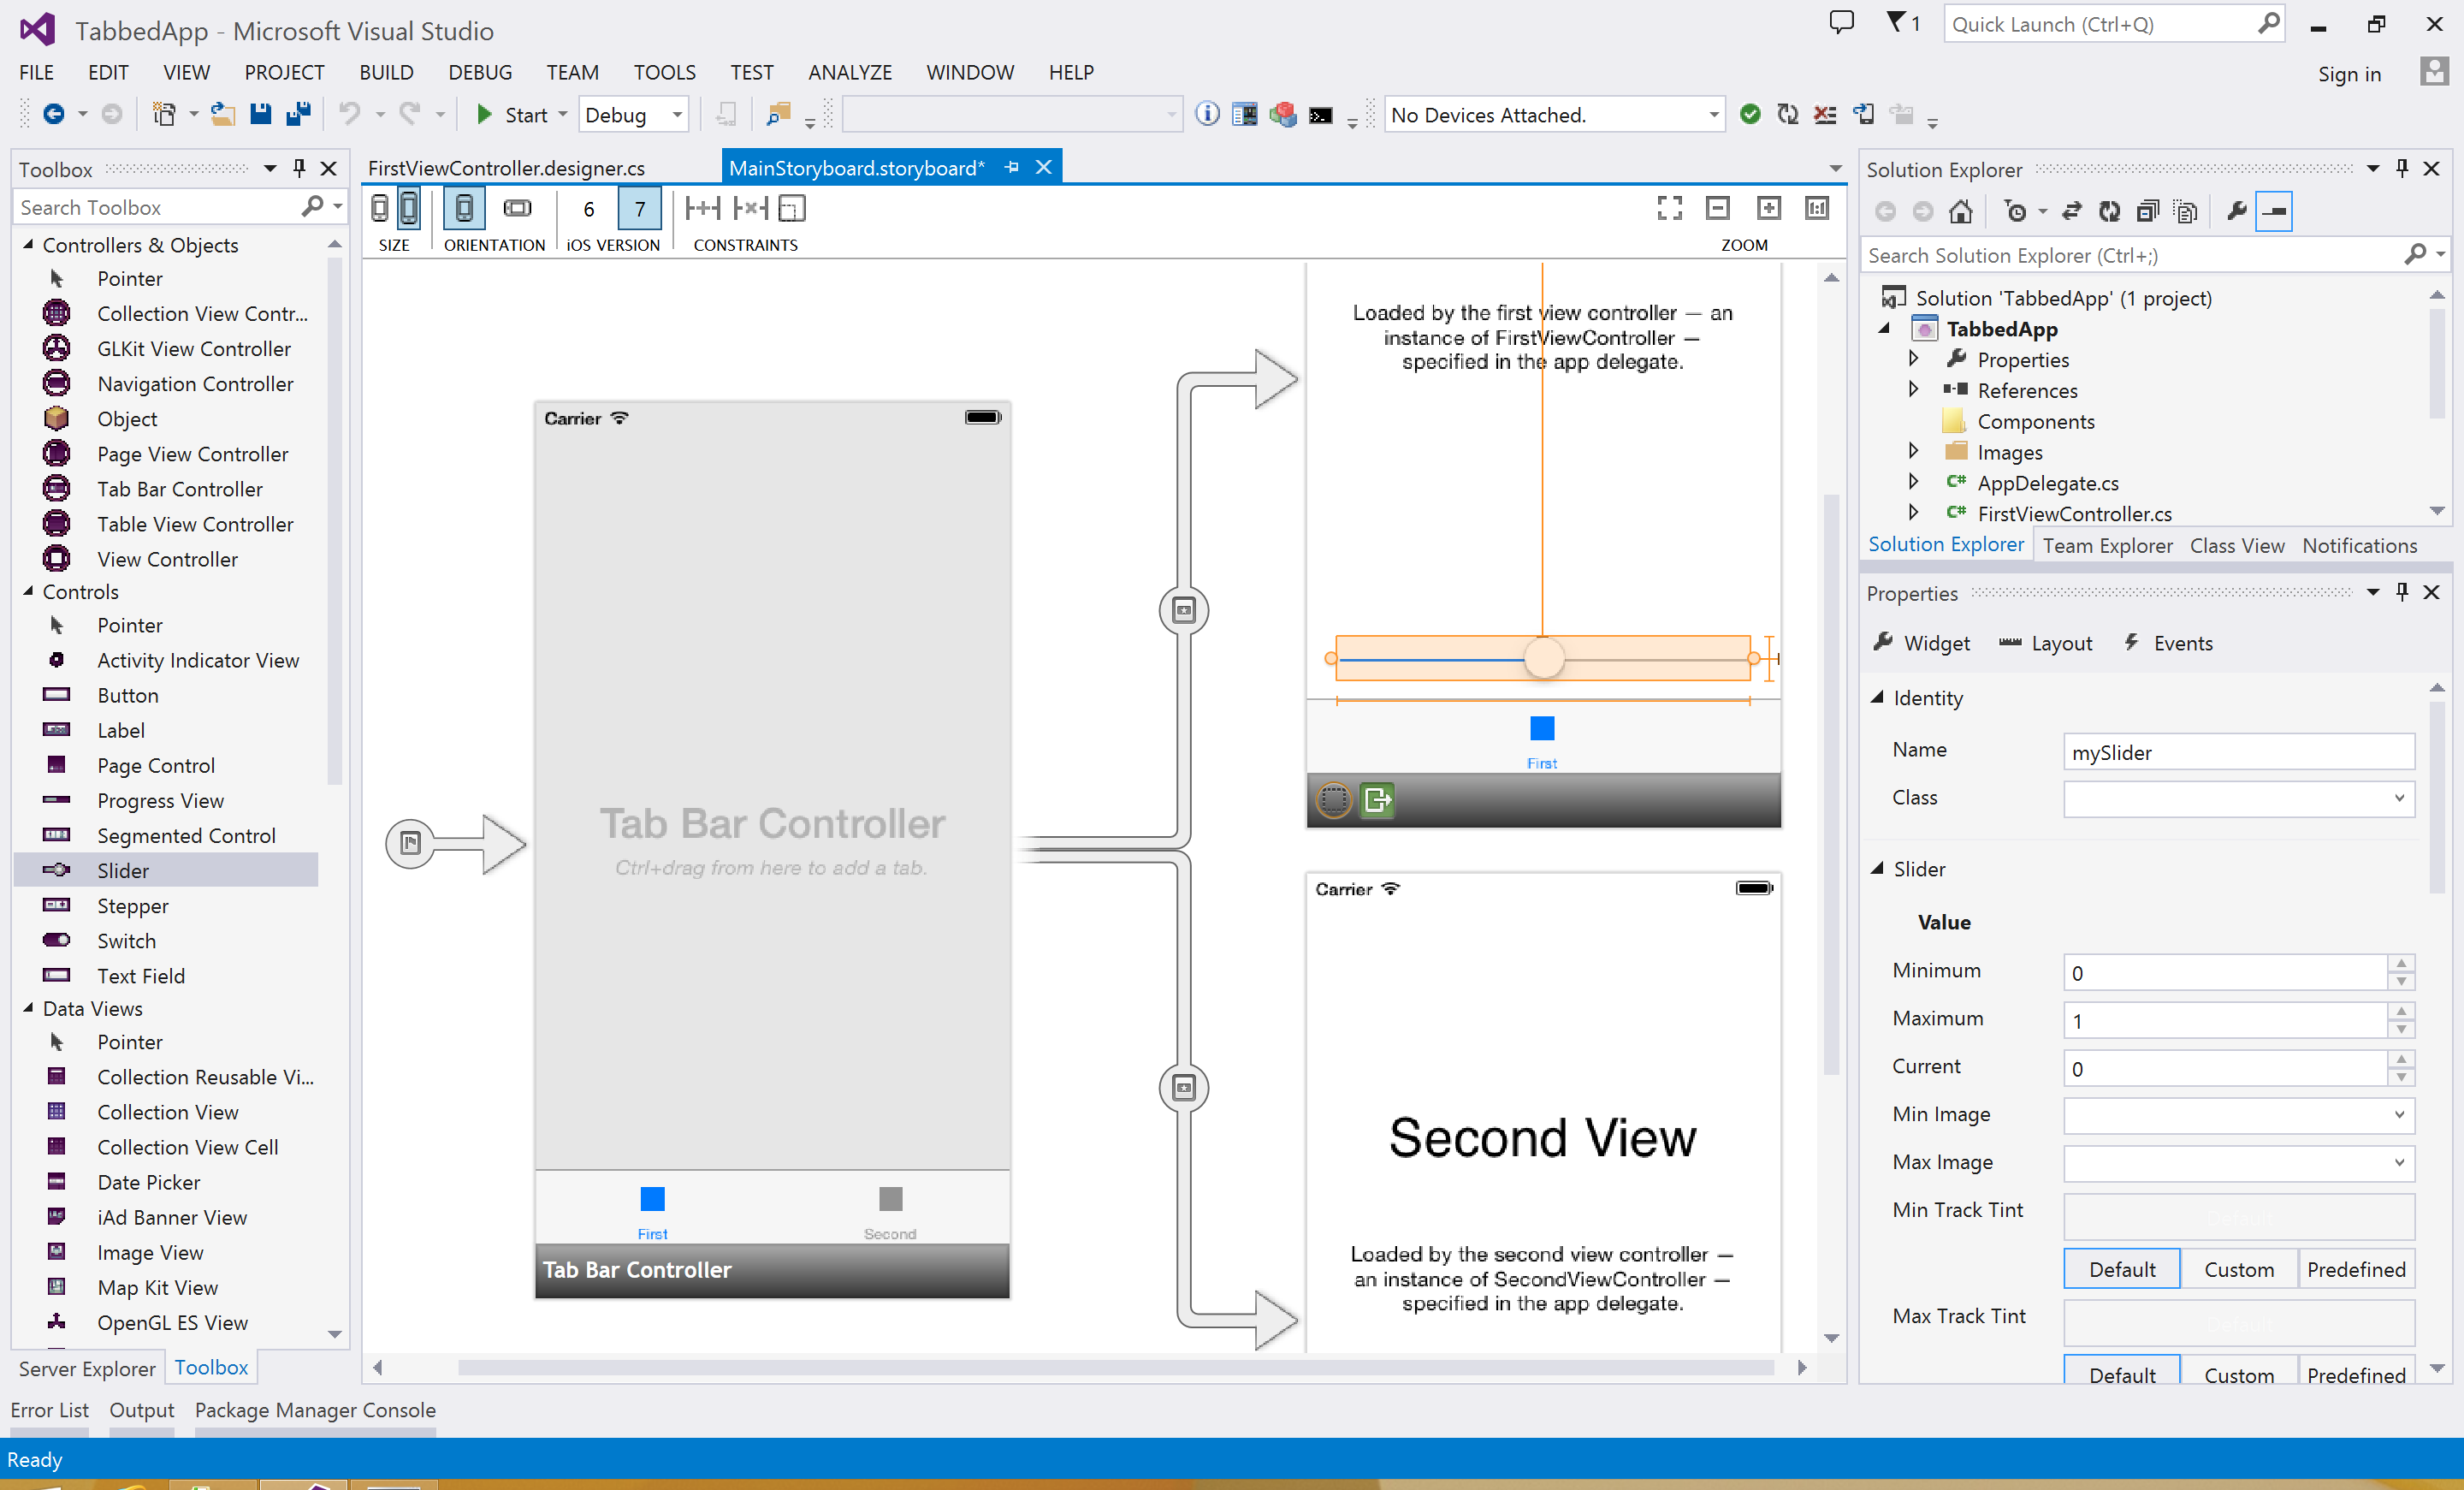 It's the Xcode Storyboard editor, but it's in Visual Studio, with the Visual Studio toolbox, Visual Studio double-click behavior, and so on and so forth. Now you never need to actually look at Xcode.